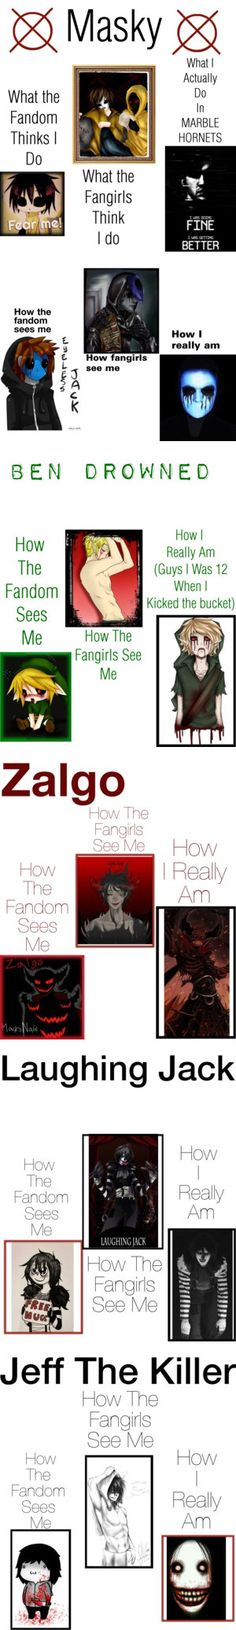 Creepypasta Memes by dragonladydoctor on Polyvore featuring art and creepypasta